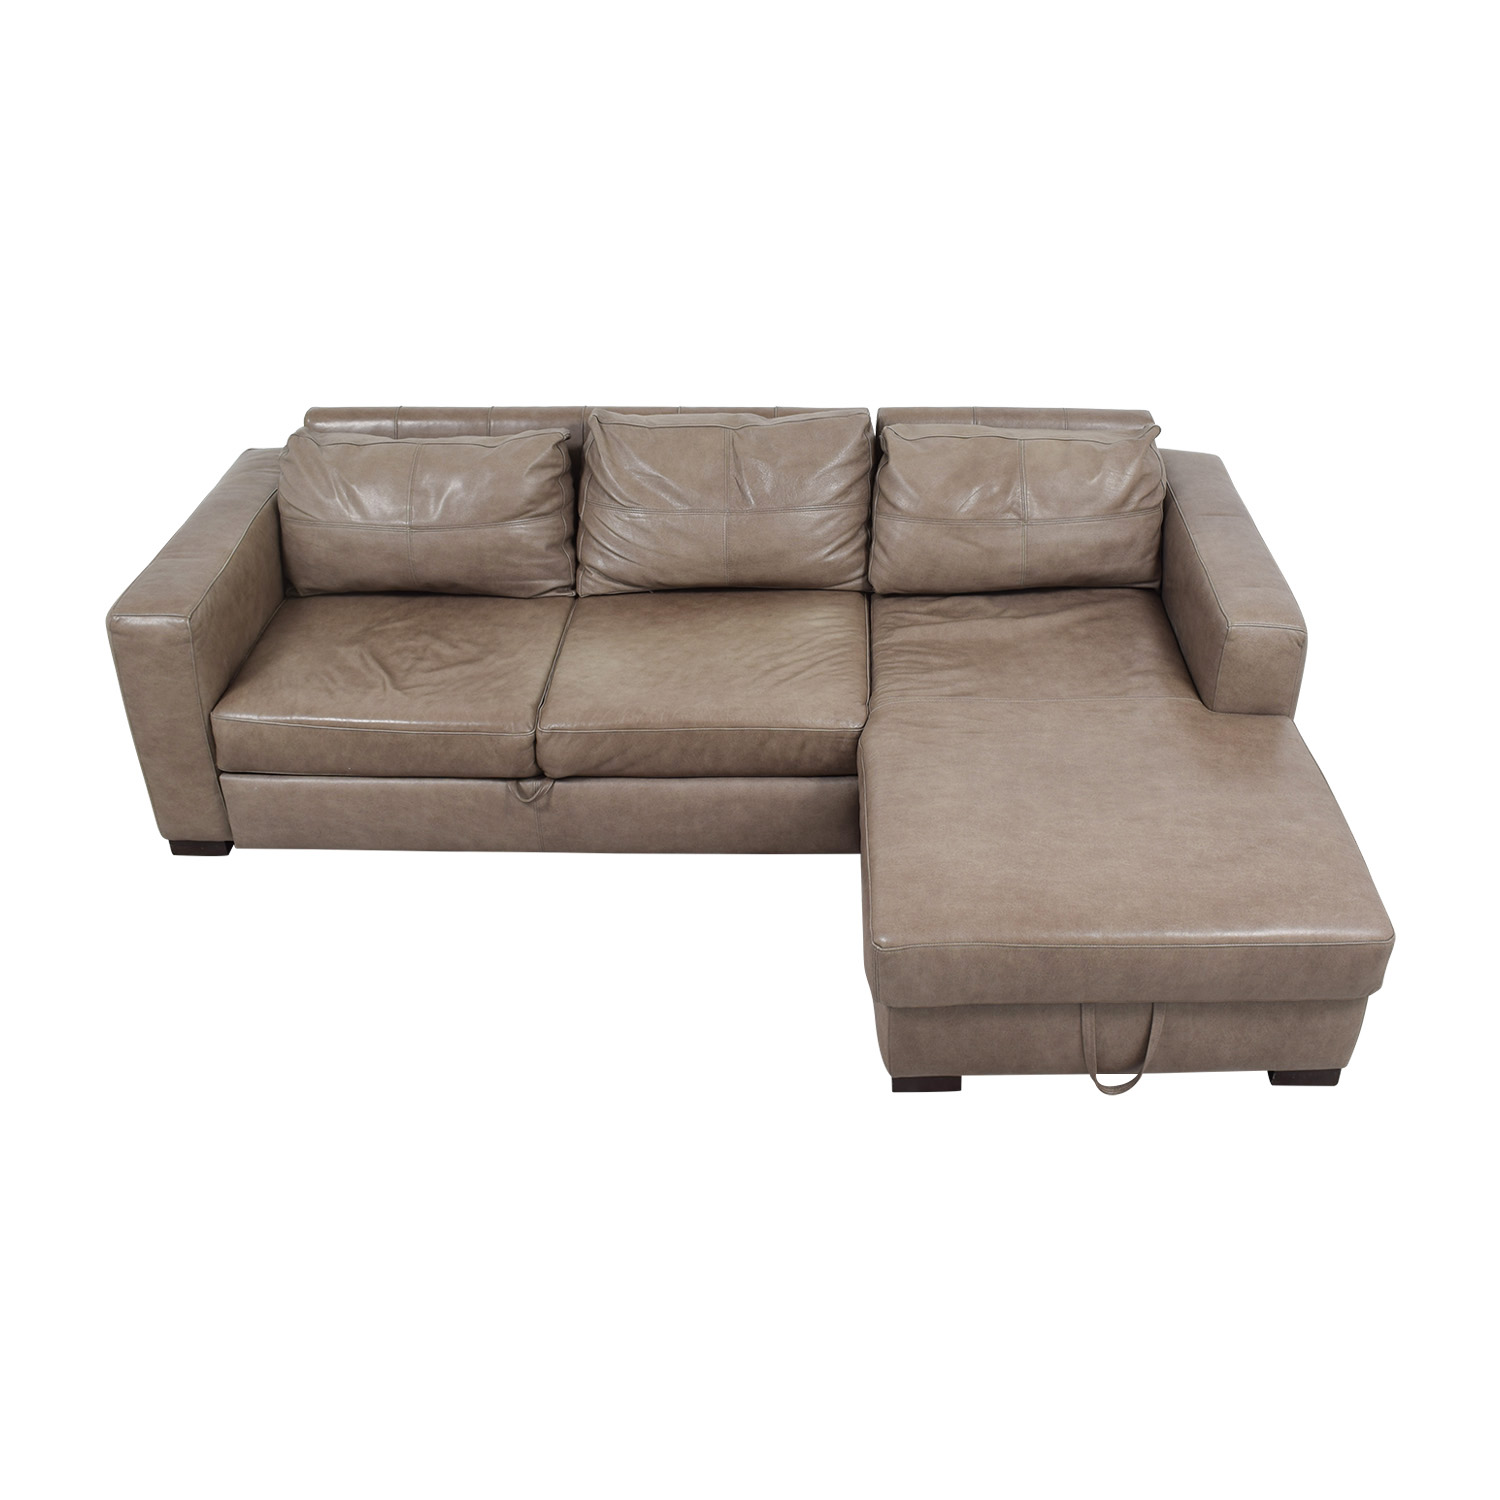 Arhaus Arhaus Grey Soft Leather Convertible Sleeper Sofa Sectionals